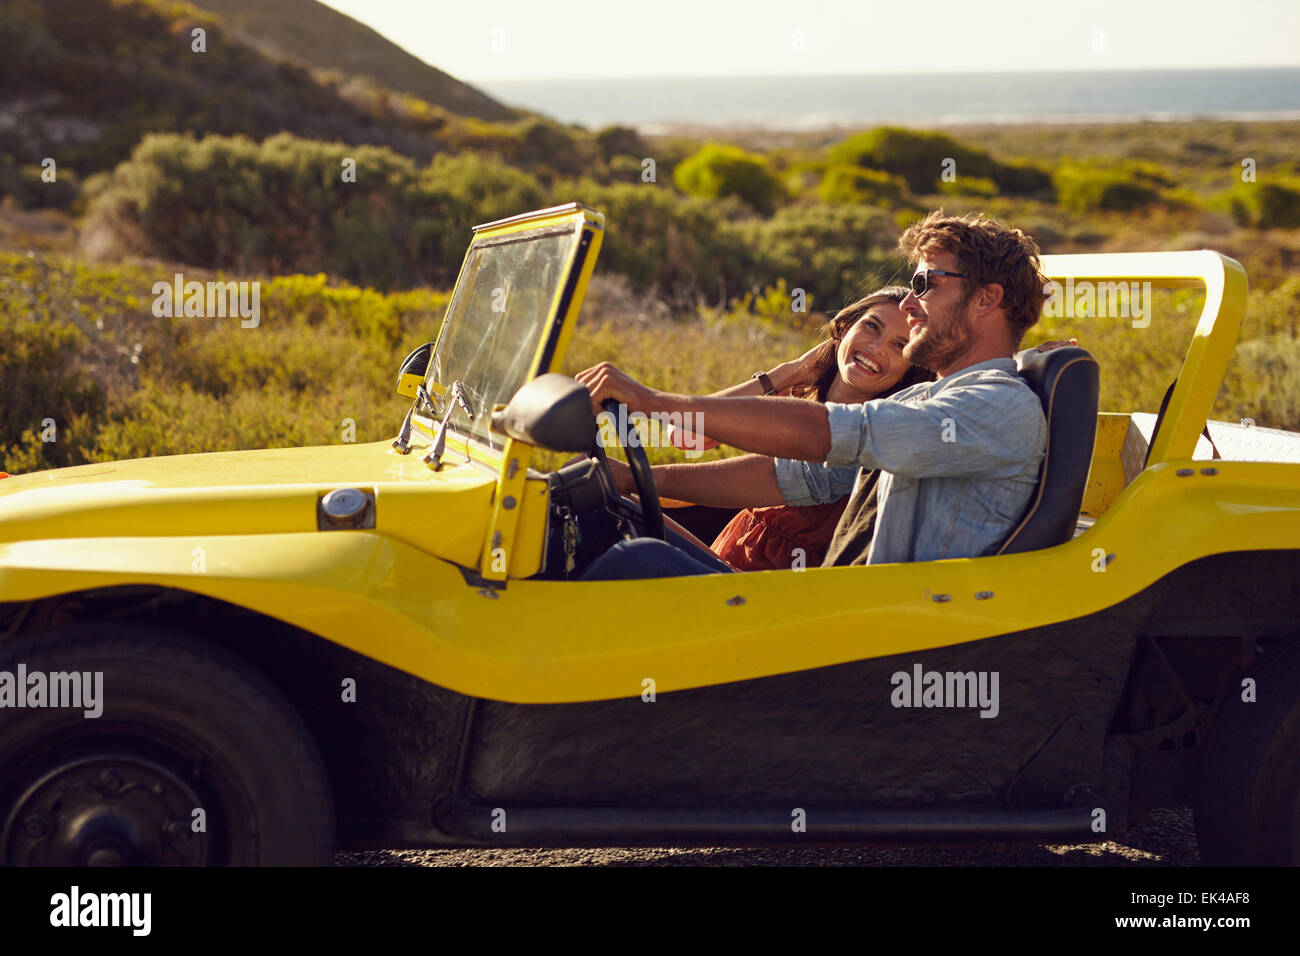 Smiling couple going on holidays together on a summer day. Young man with his girlfriend on  road trip in a buggy - Stock Image